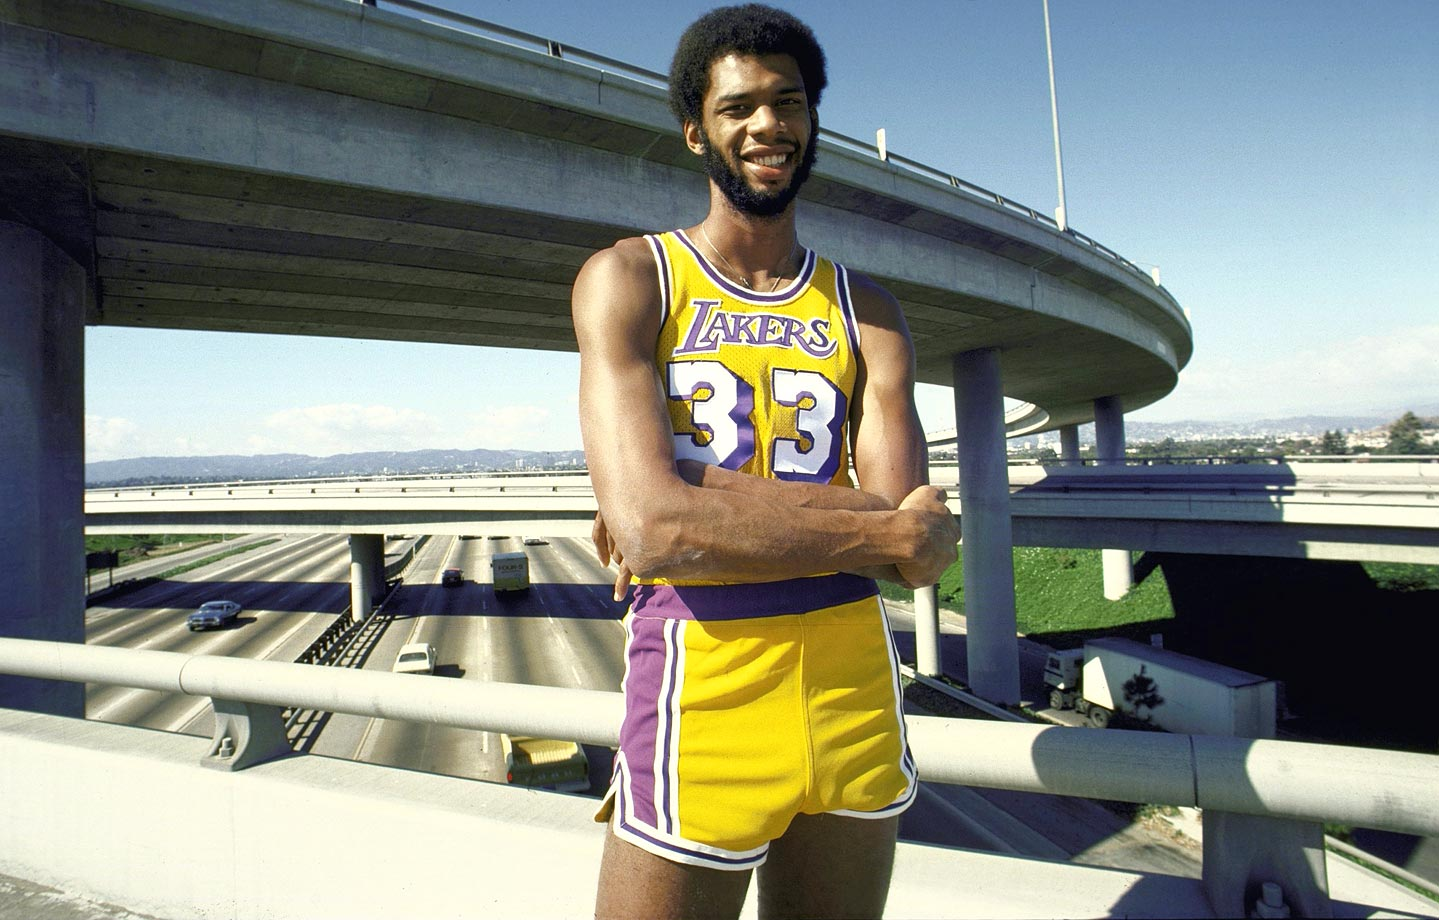 Clearly one of the greatest players ever, Abdul-Jabbar is the NBA's all-time leading scorer by a mile and played in the second-most games of any player in history behind only Robert Parish. Kareem was an All-Star in 19 of his 20 seasons and claimed six championships. His skyhook will, of course, forever be legendary. — Runners-up: Larry Bird, Scottie Pippen